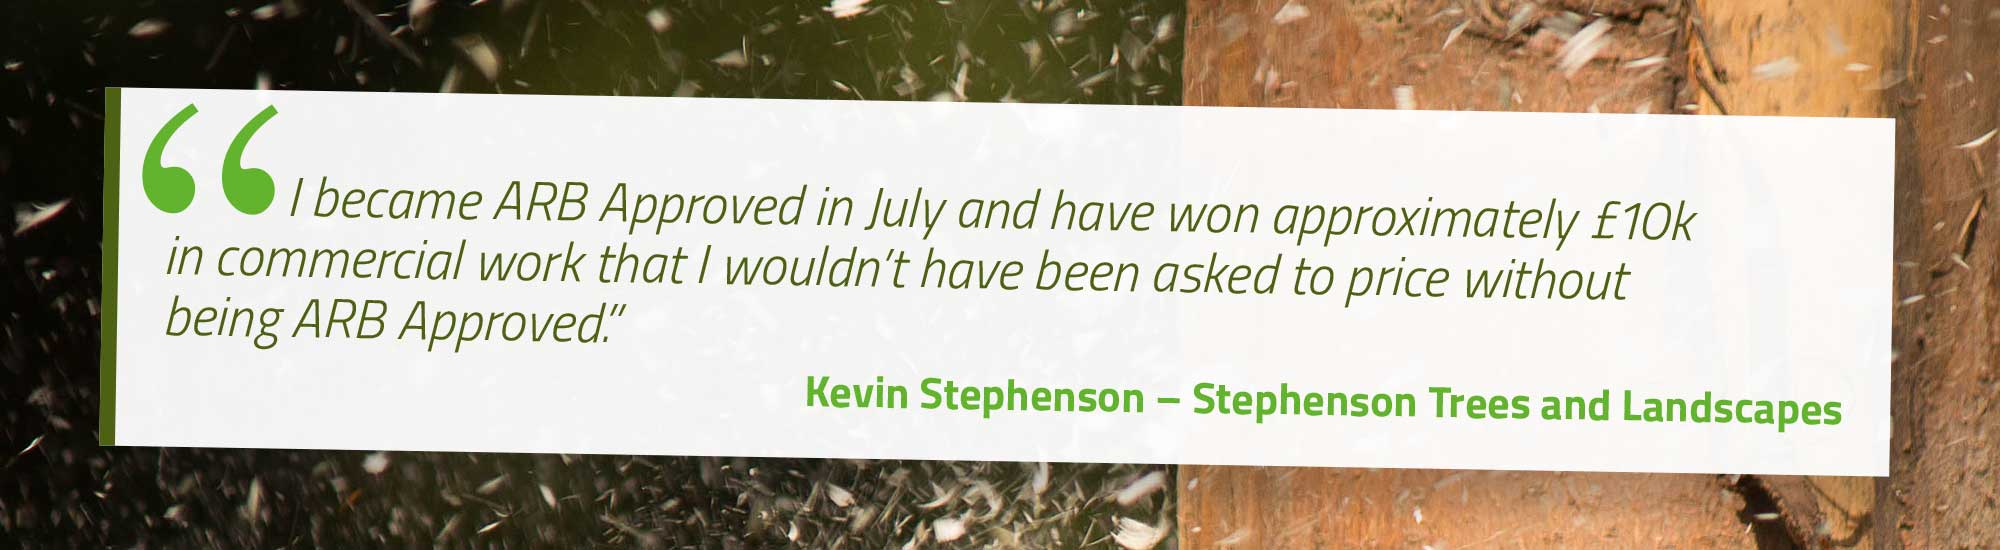 I became ARB Approved in July and have won approximately £10k in commercial work that I wouldn't have been asked to price without being ARB Approved. Kevin Stephenson – Stephenson Trees and Landscapes